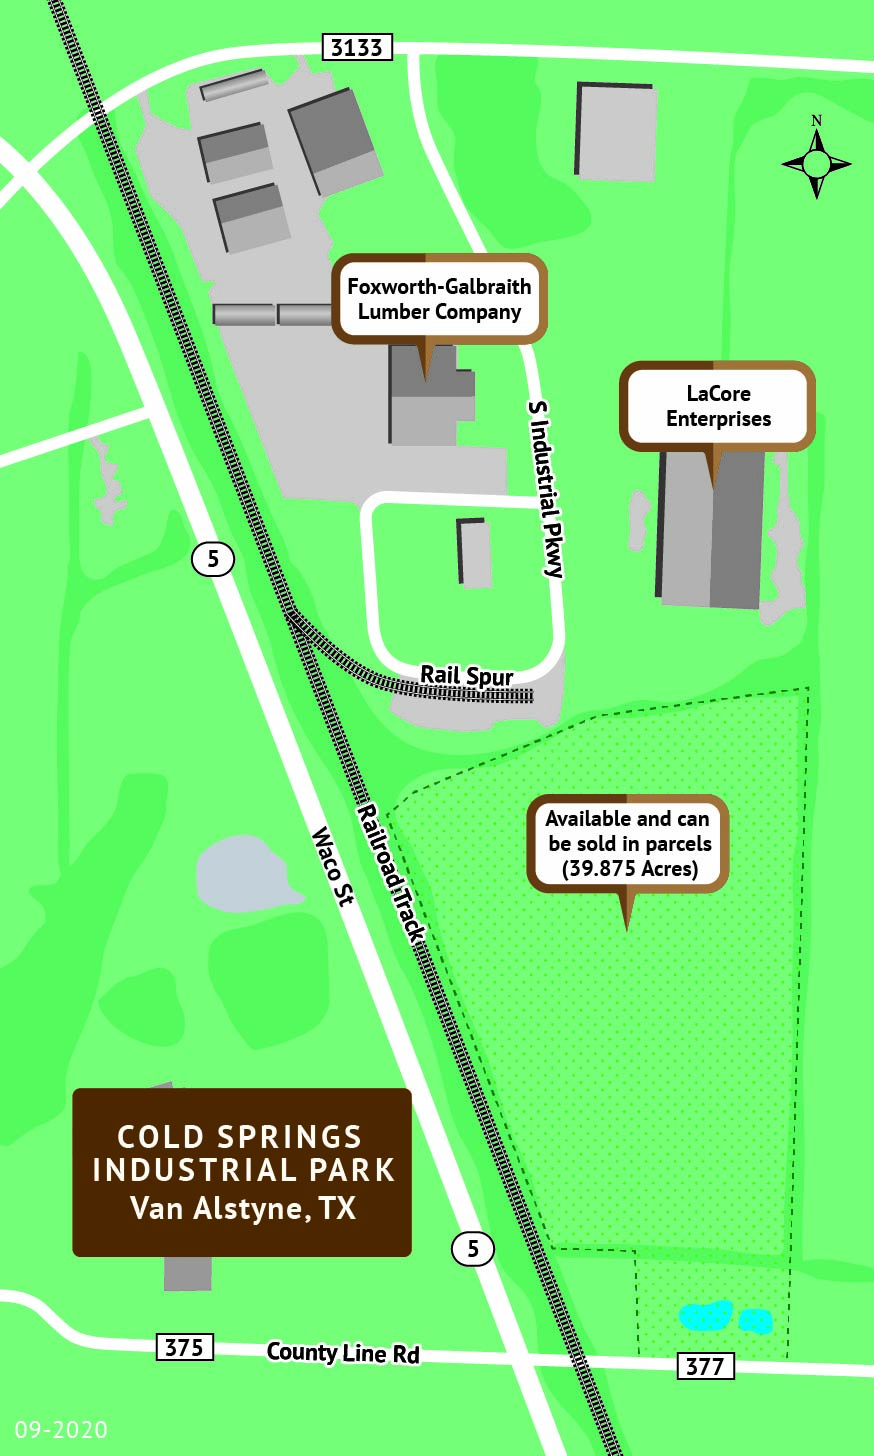 Rendering of Cold Springs Industrial Park roads, railroad tracks and buildings